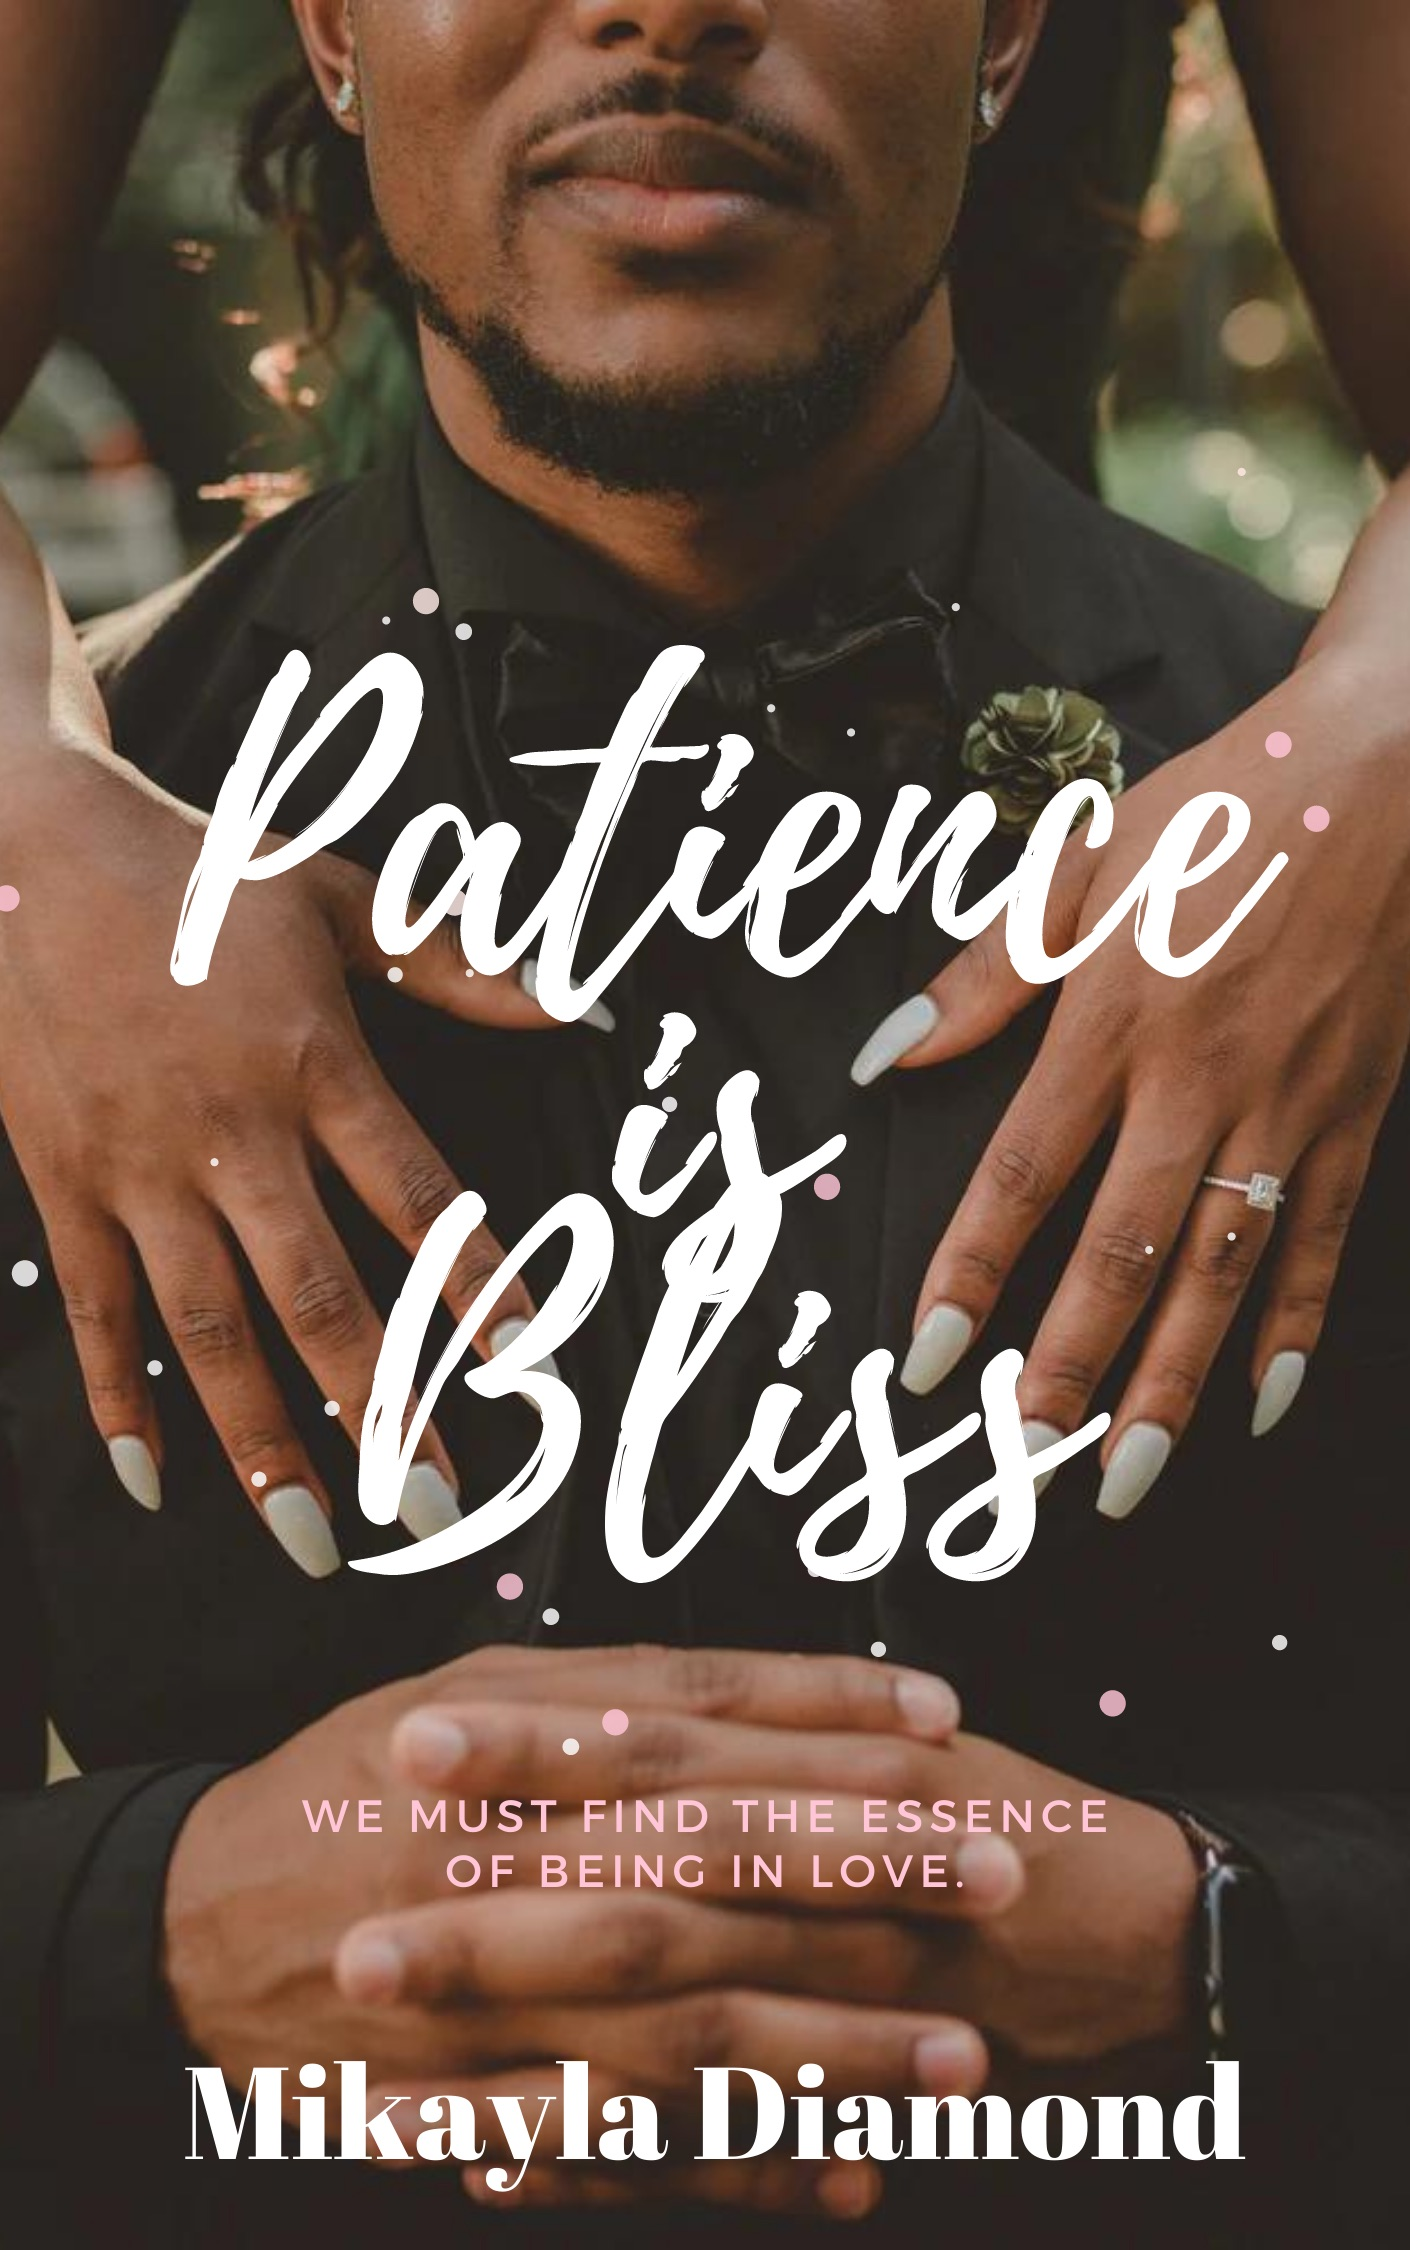 Mikayla Diamond Shares Her Thought-Provoking Perspective On Marriage In Patience Is Bliss